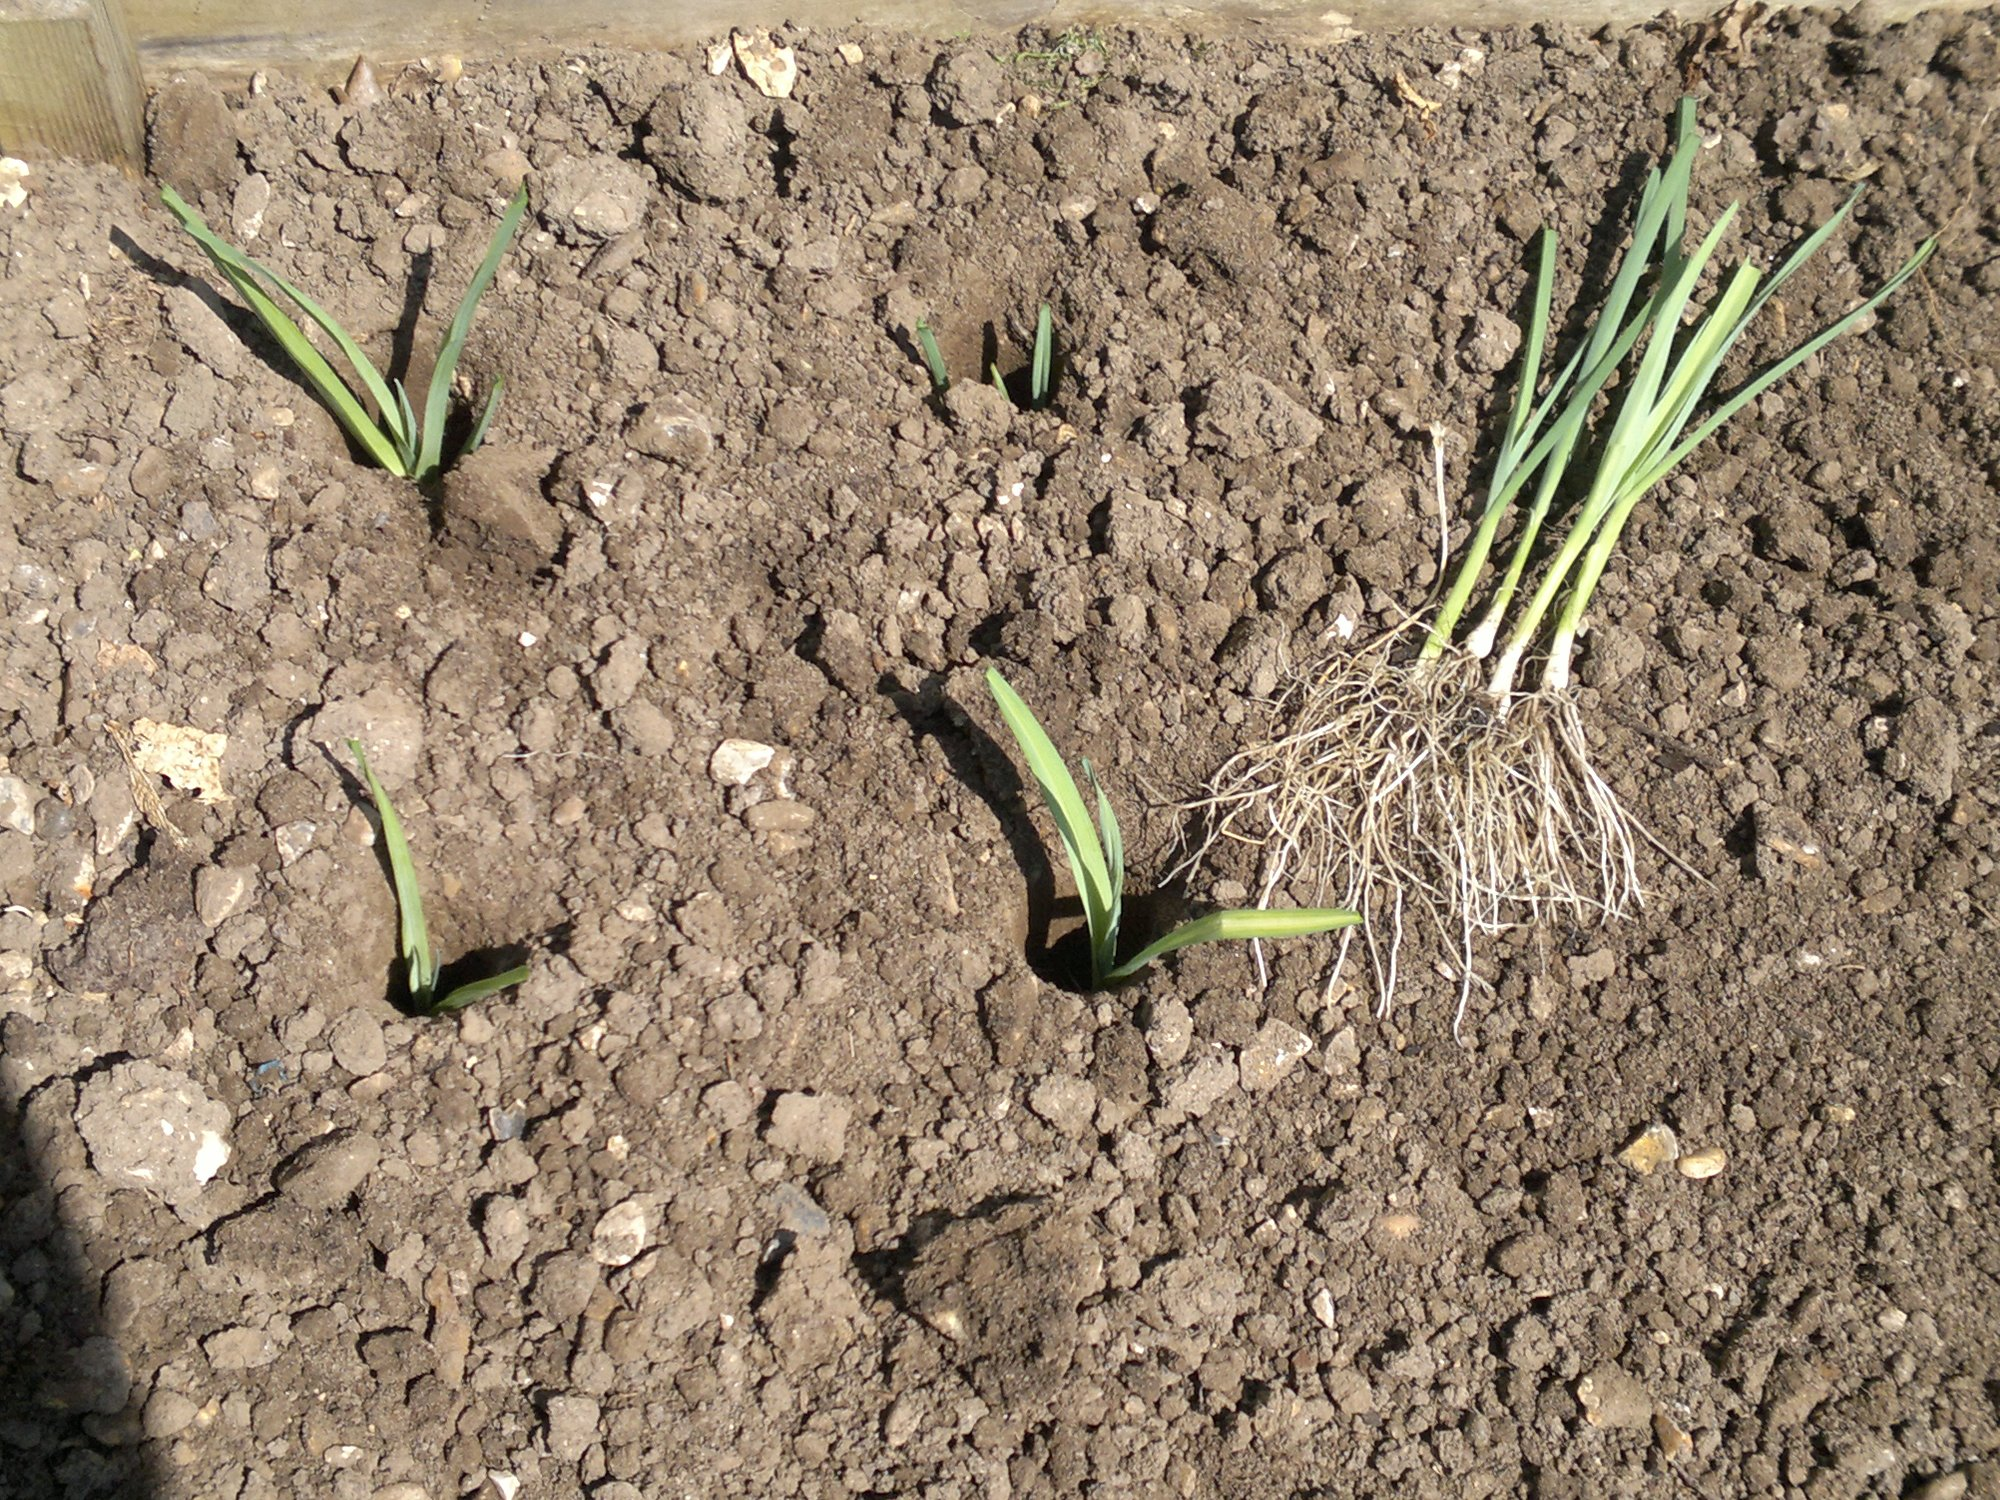 Leeks being transplanted